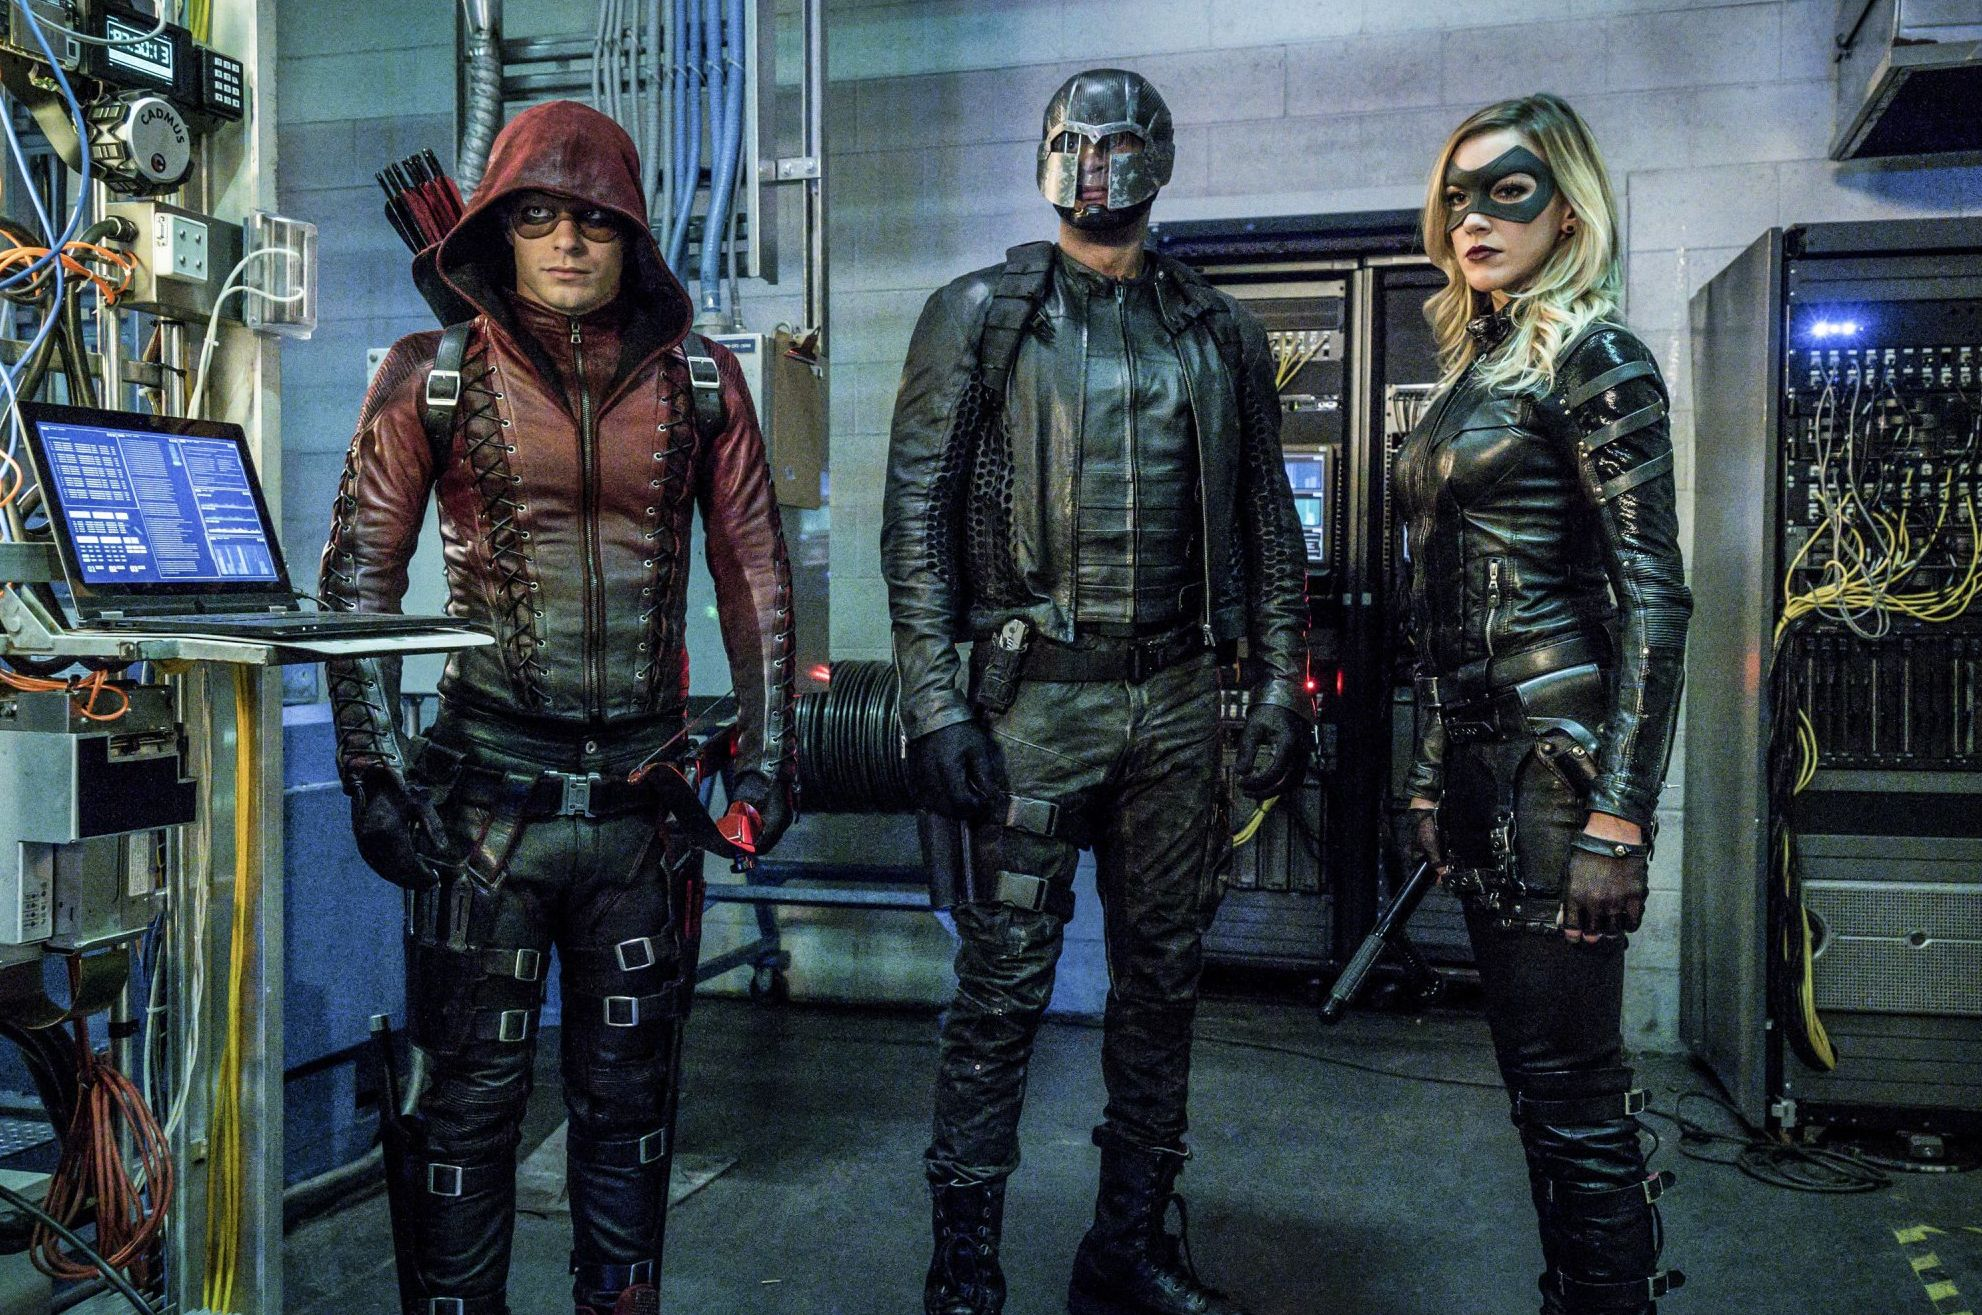 Arsenal, Spartan, Black Canary